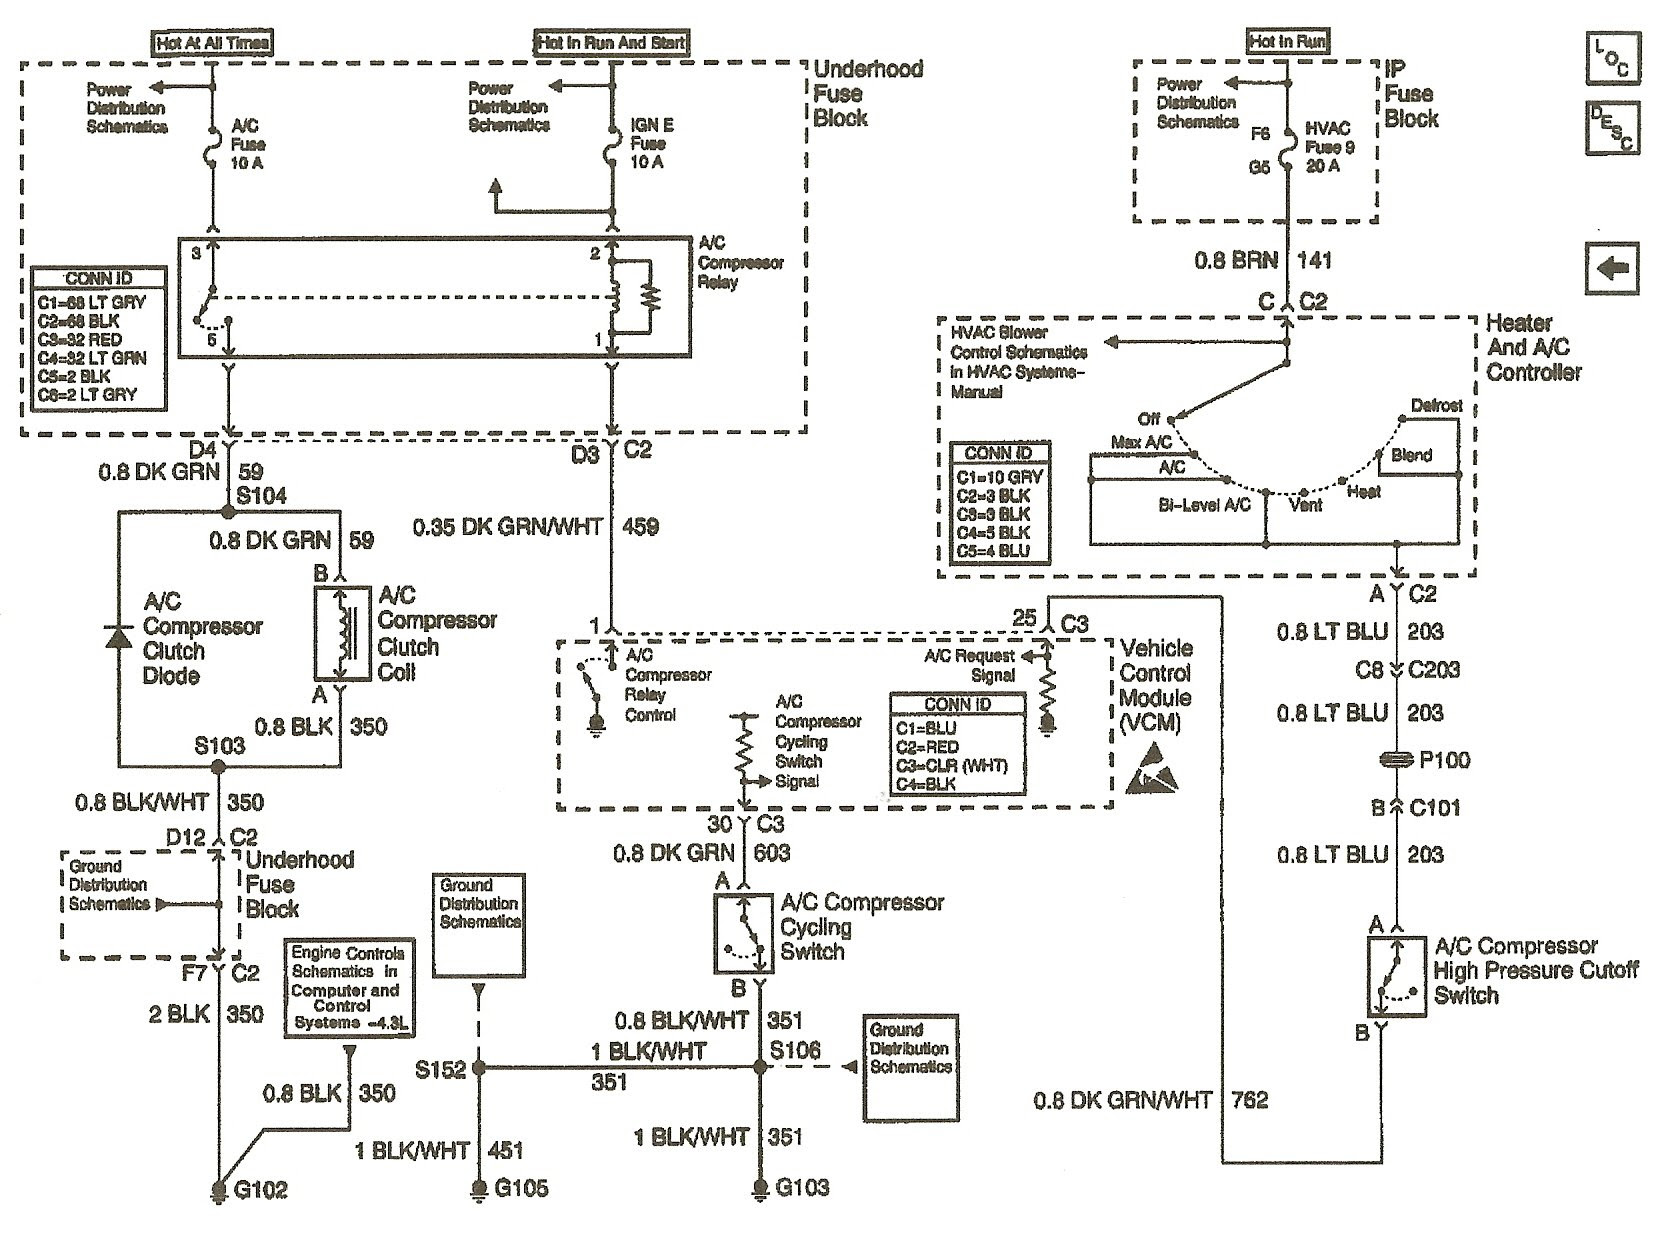 96 Chevy S10 Spark Plug Wire Diagram - Wiring Diagram Networks